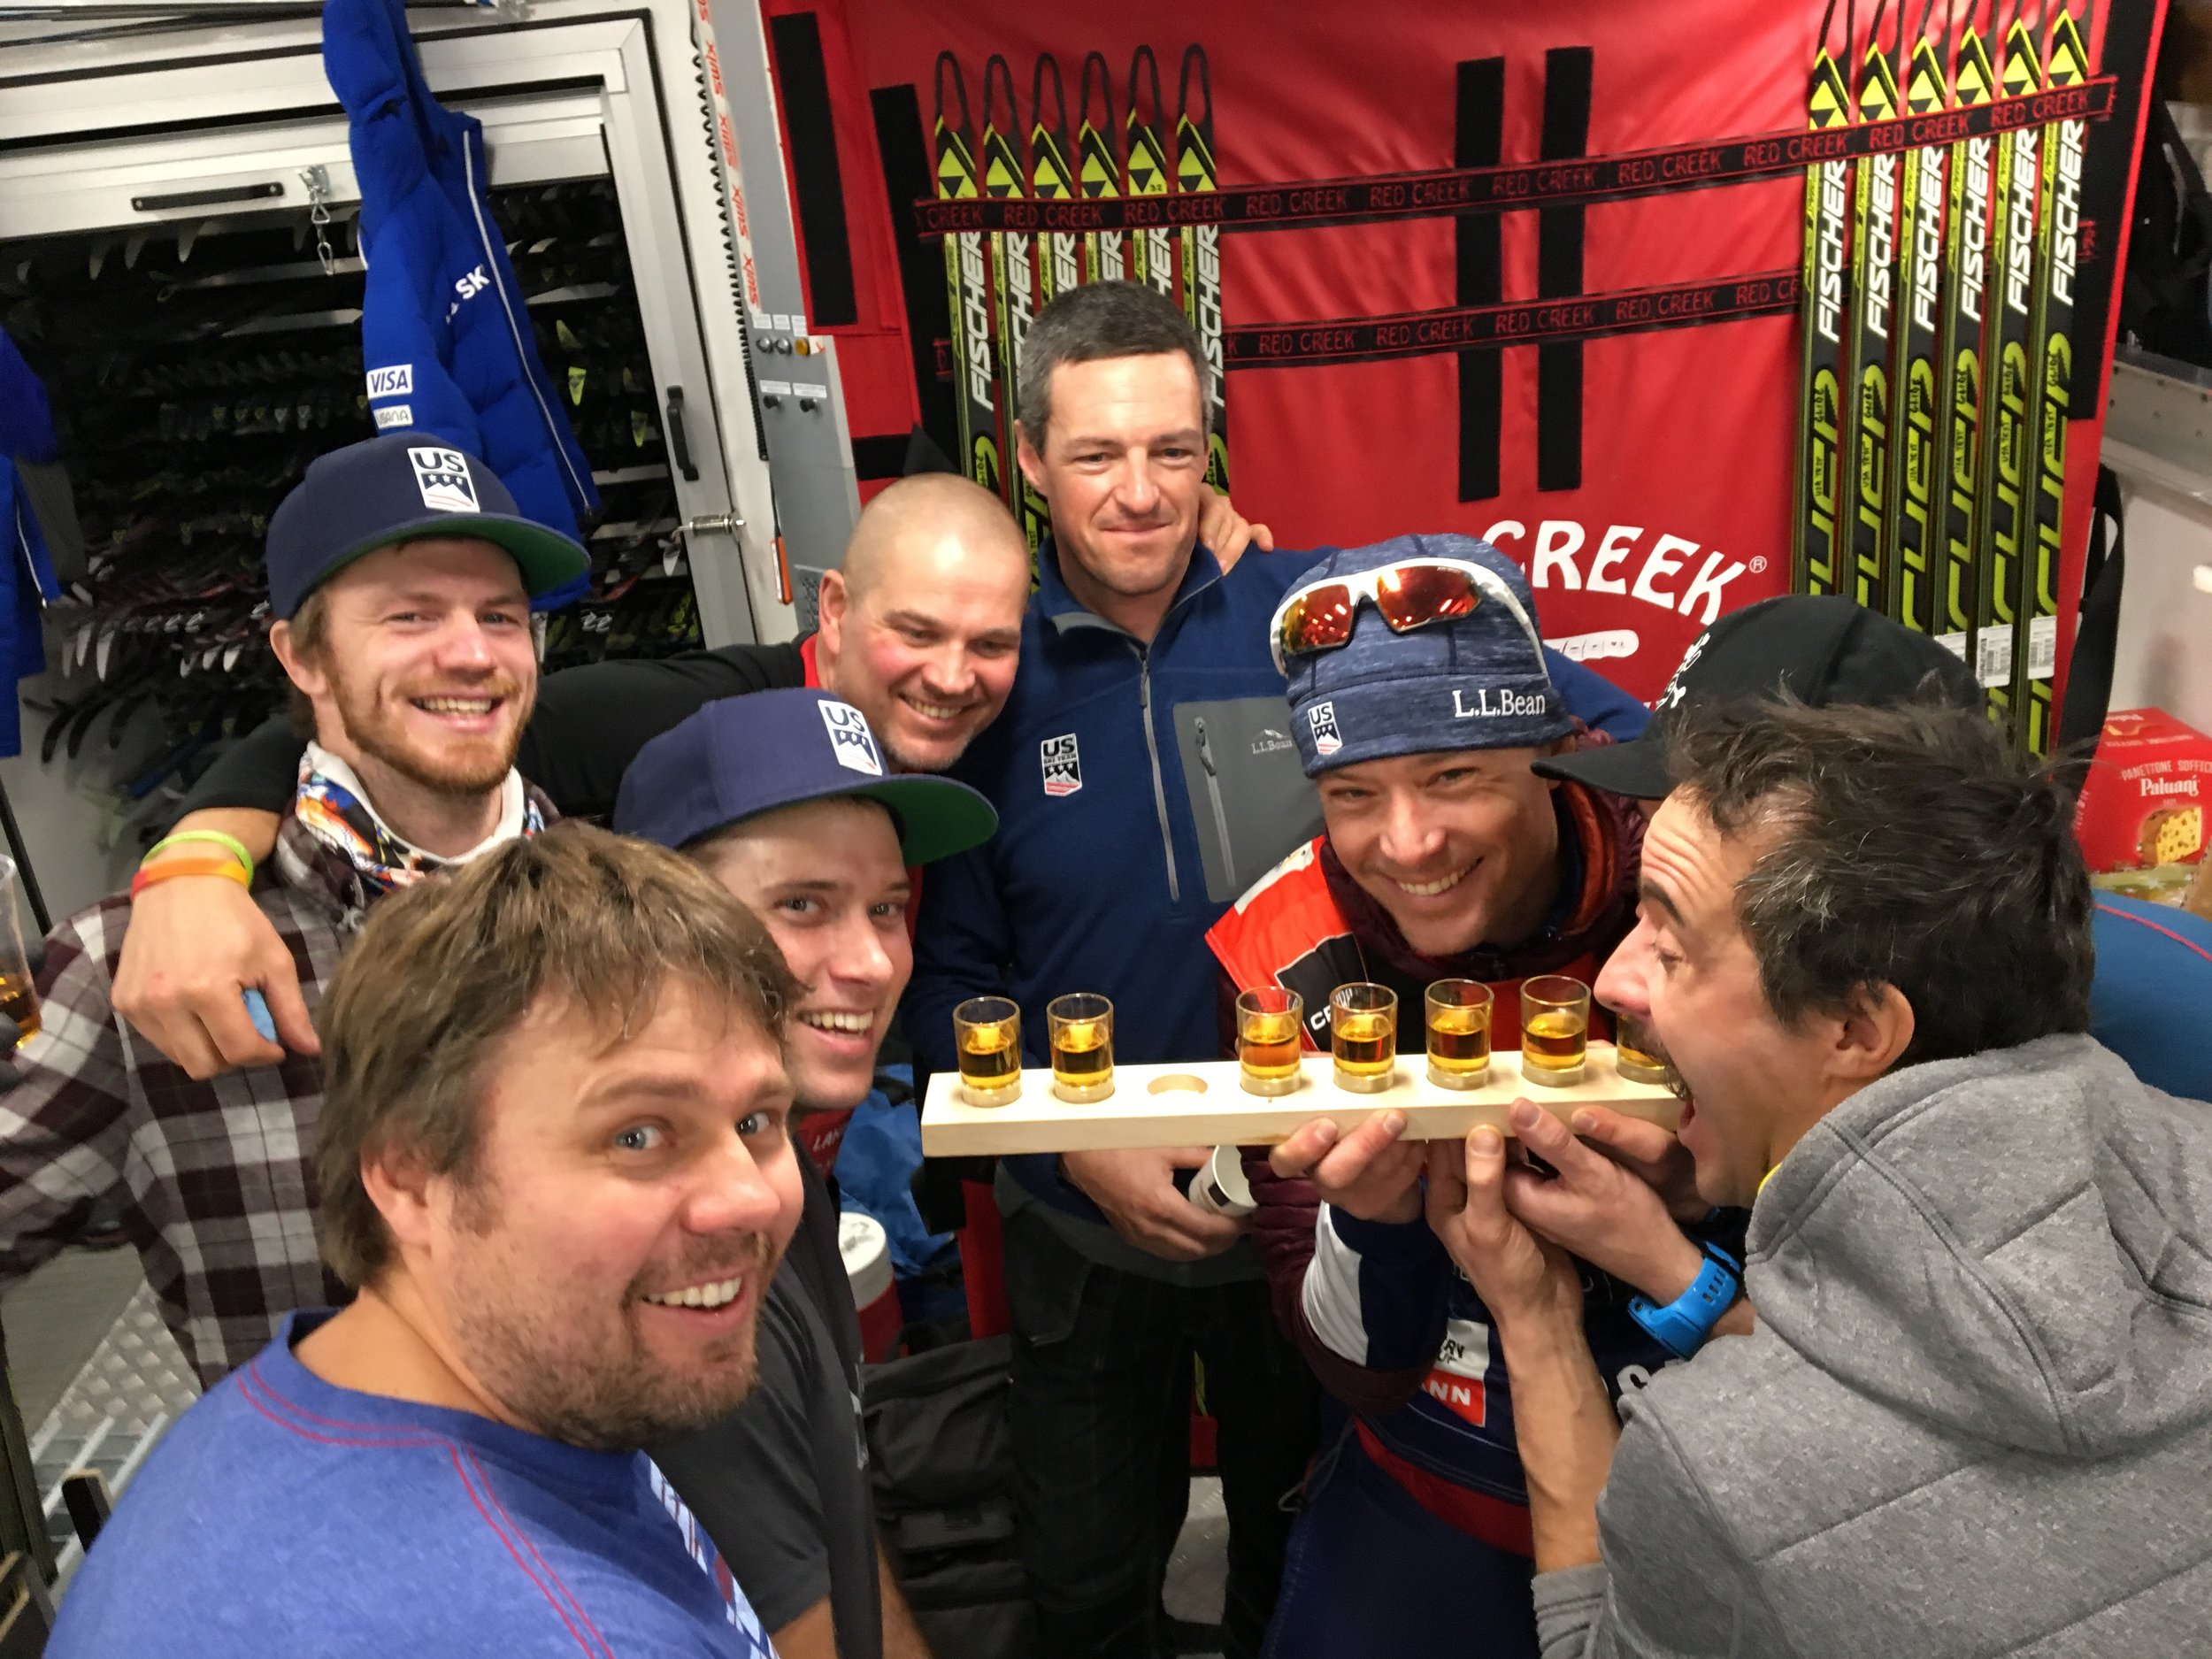 Sometimes I wish we could bring our wax technicians up on the podium with us... but then it would get pretty busy, because these boys work as a team! They deserve at least 50% of the credit, because we wouldn't be able to do it without them. Even if they don't step up on the podium, they still celebrate podiums, and never take for granted a day they manage to out wax the rest of the world.